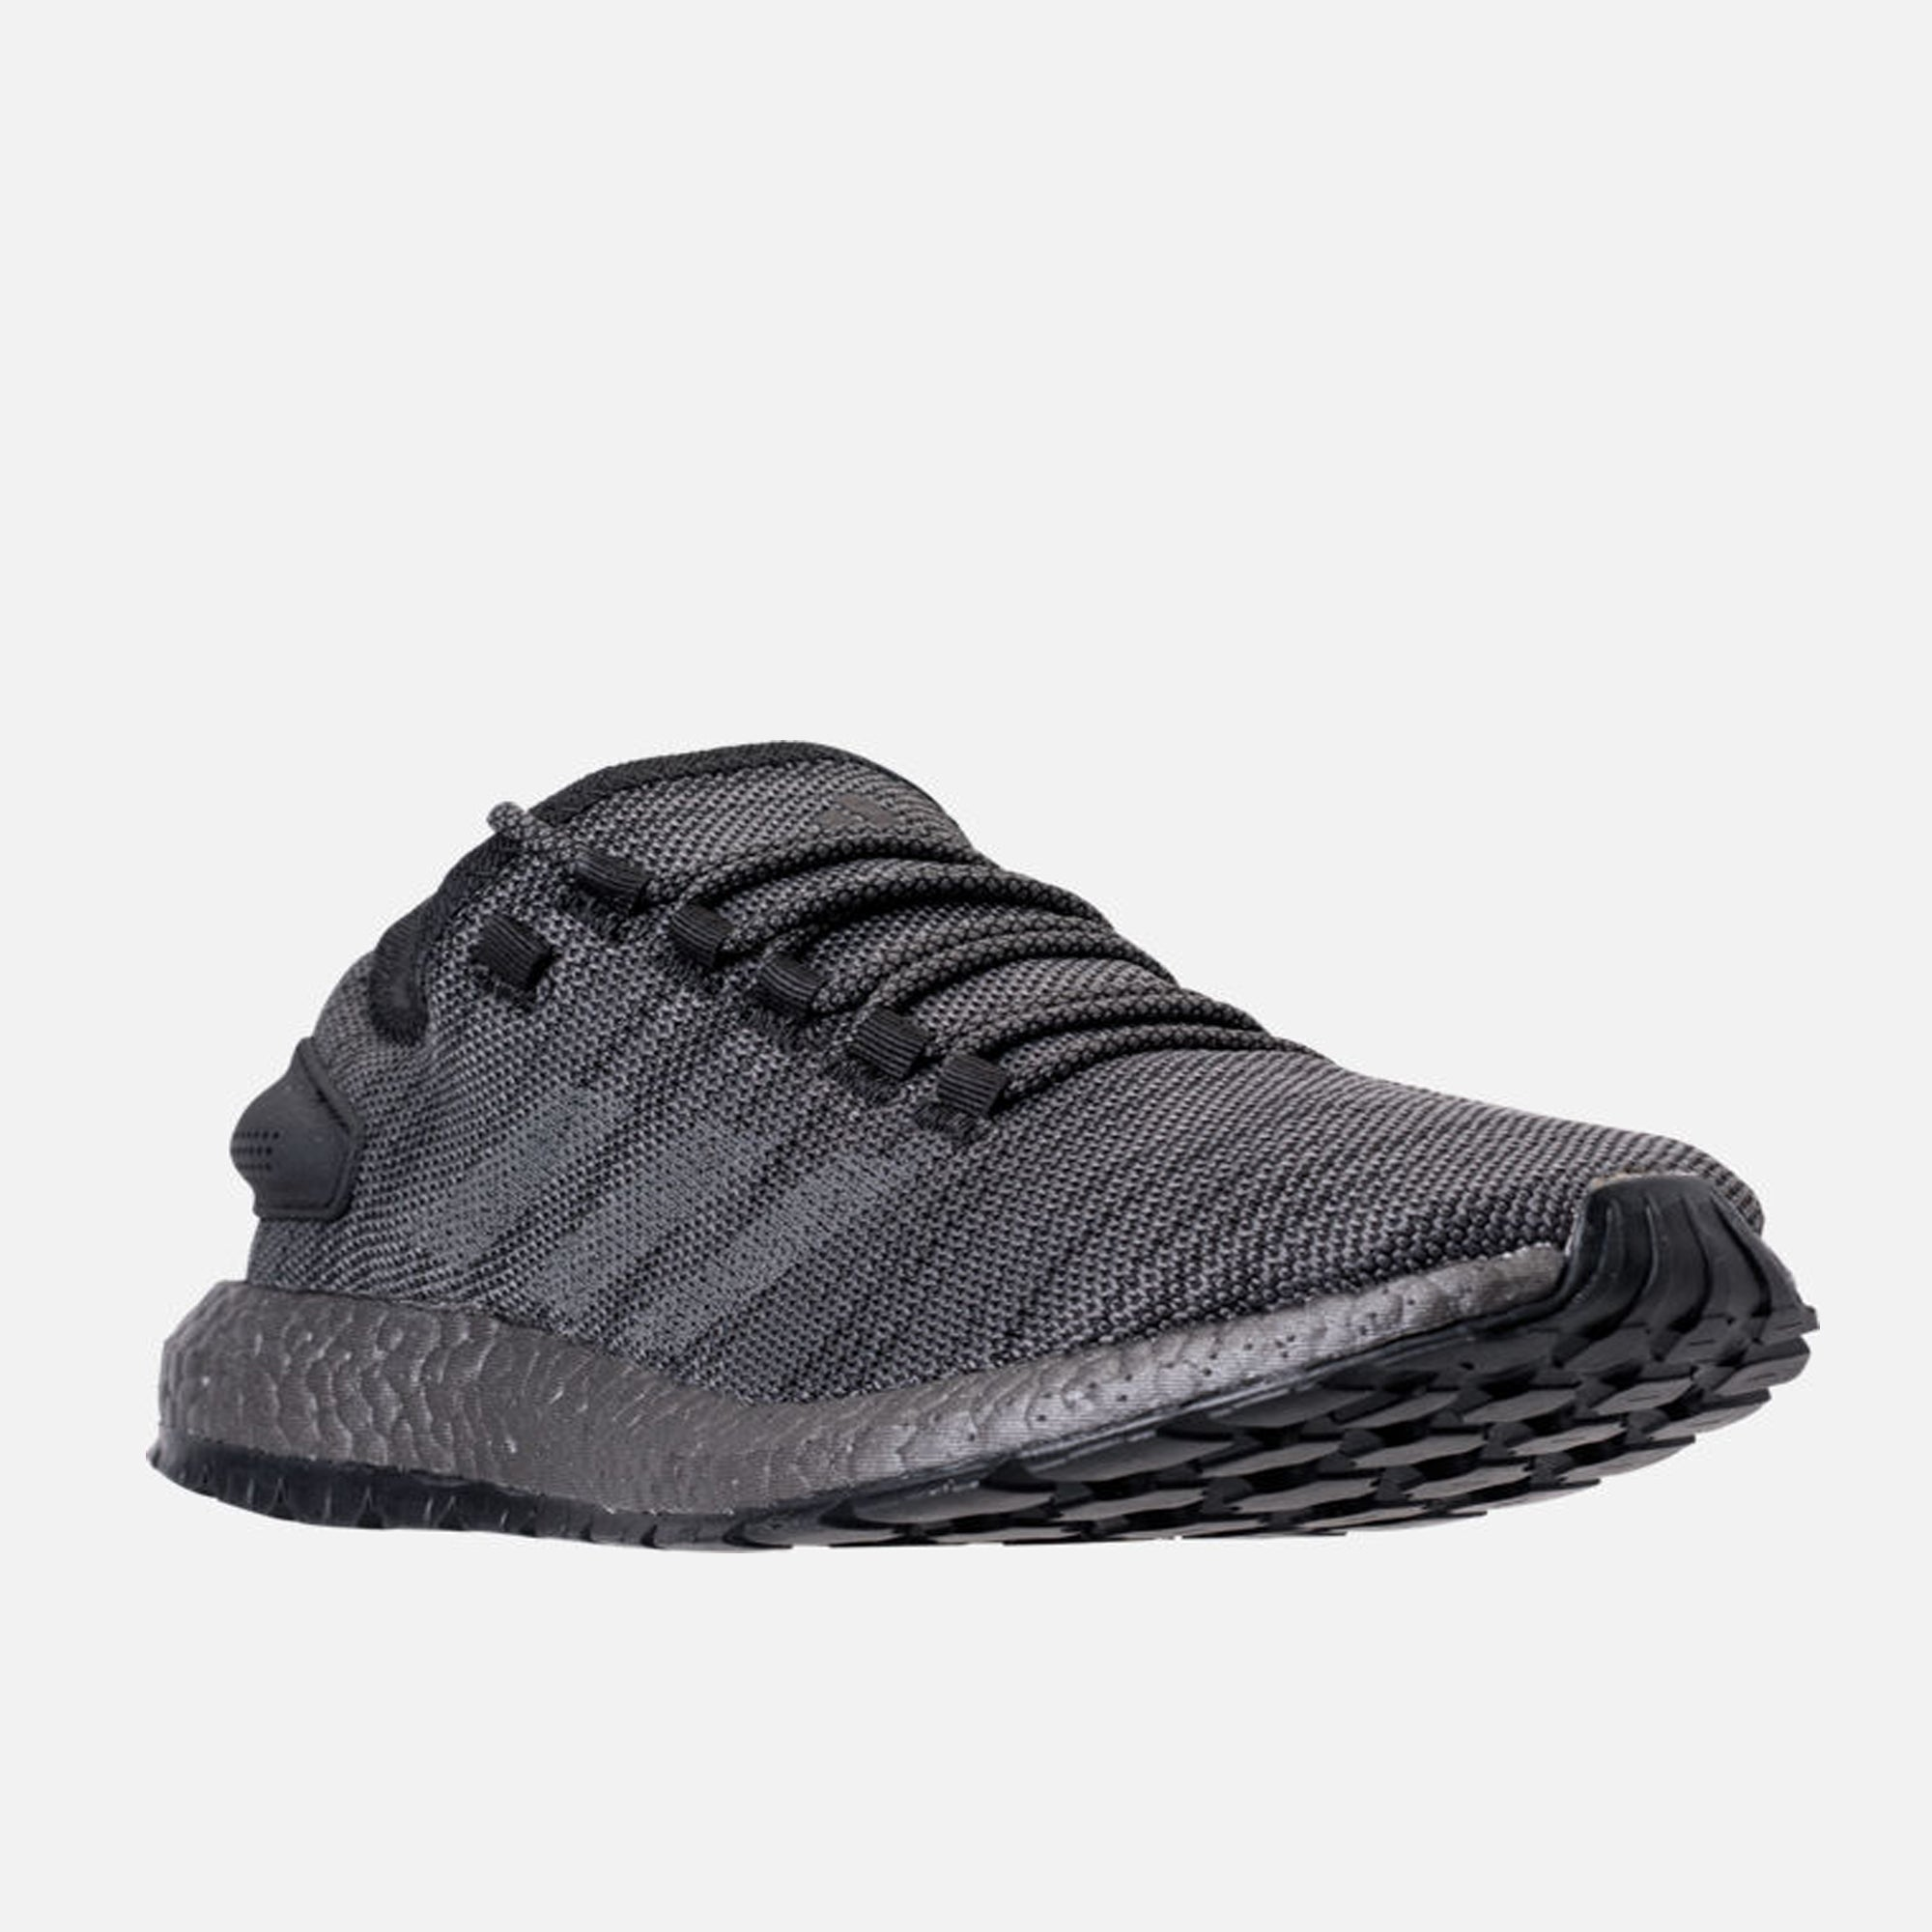 348781a35dc415 ... Grey Silver  best website 1b354 90b93 Now Available adidas Pure Boost   premium selection c454e 9b390 ... Men s Adidas Pureboost X ATR Running  Shoes ...